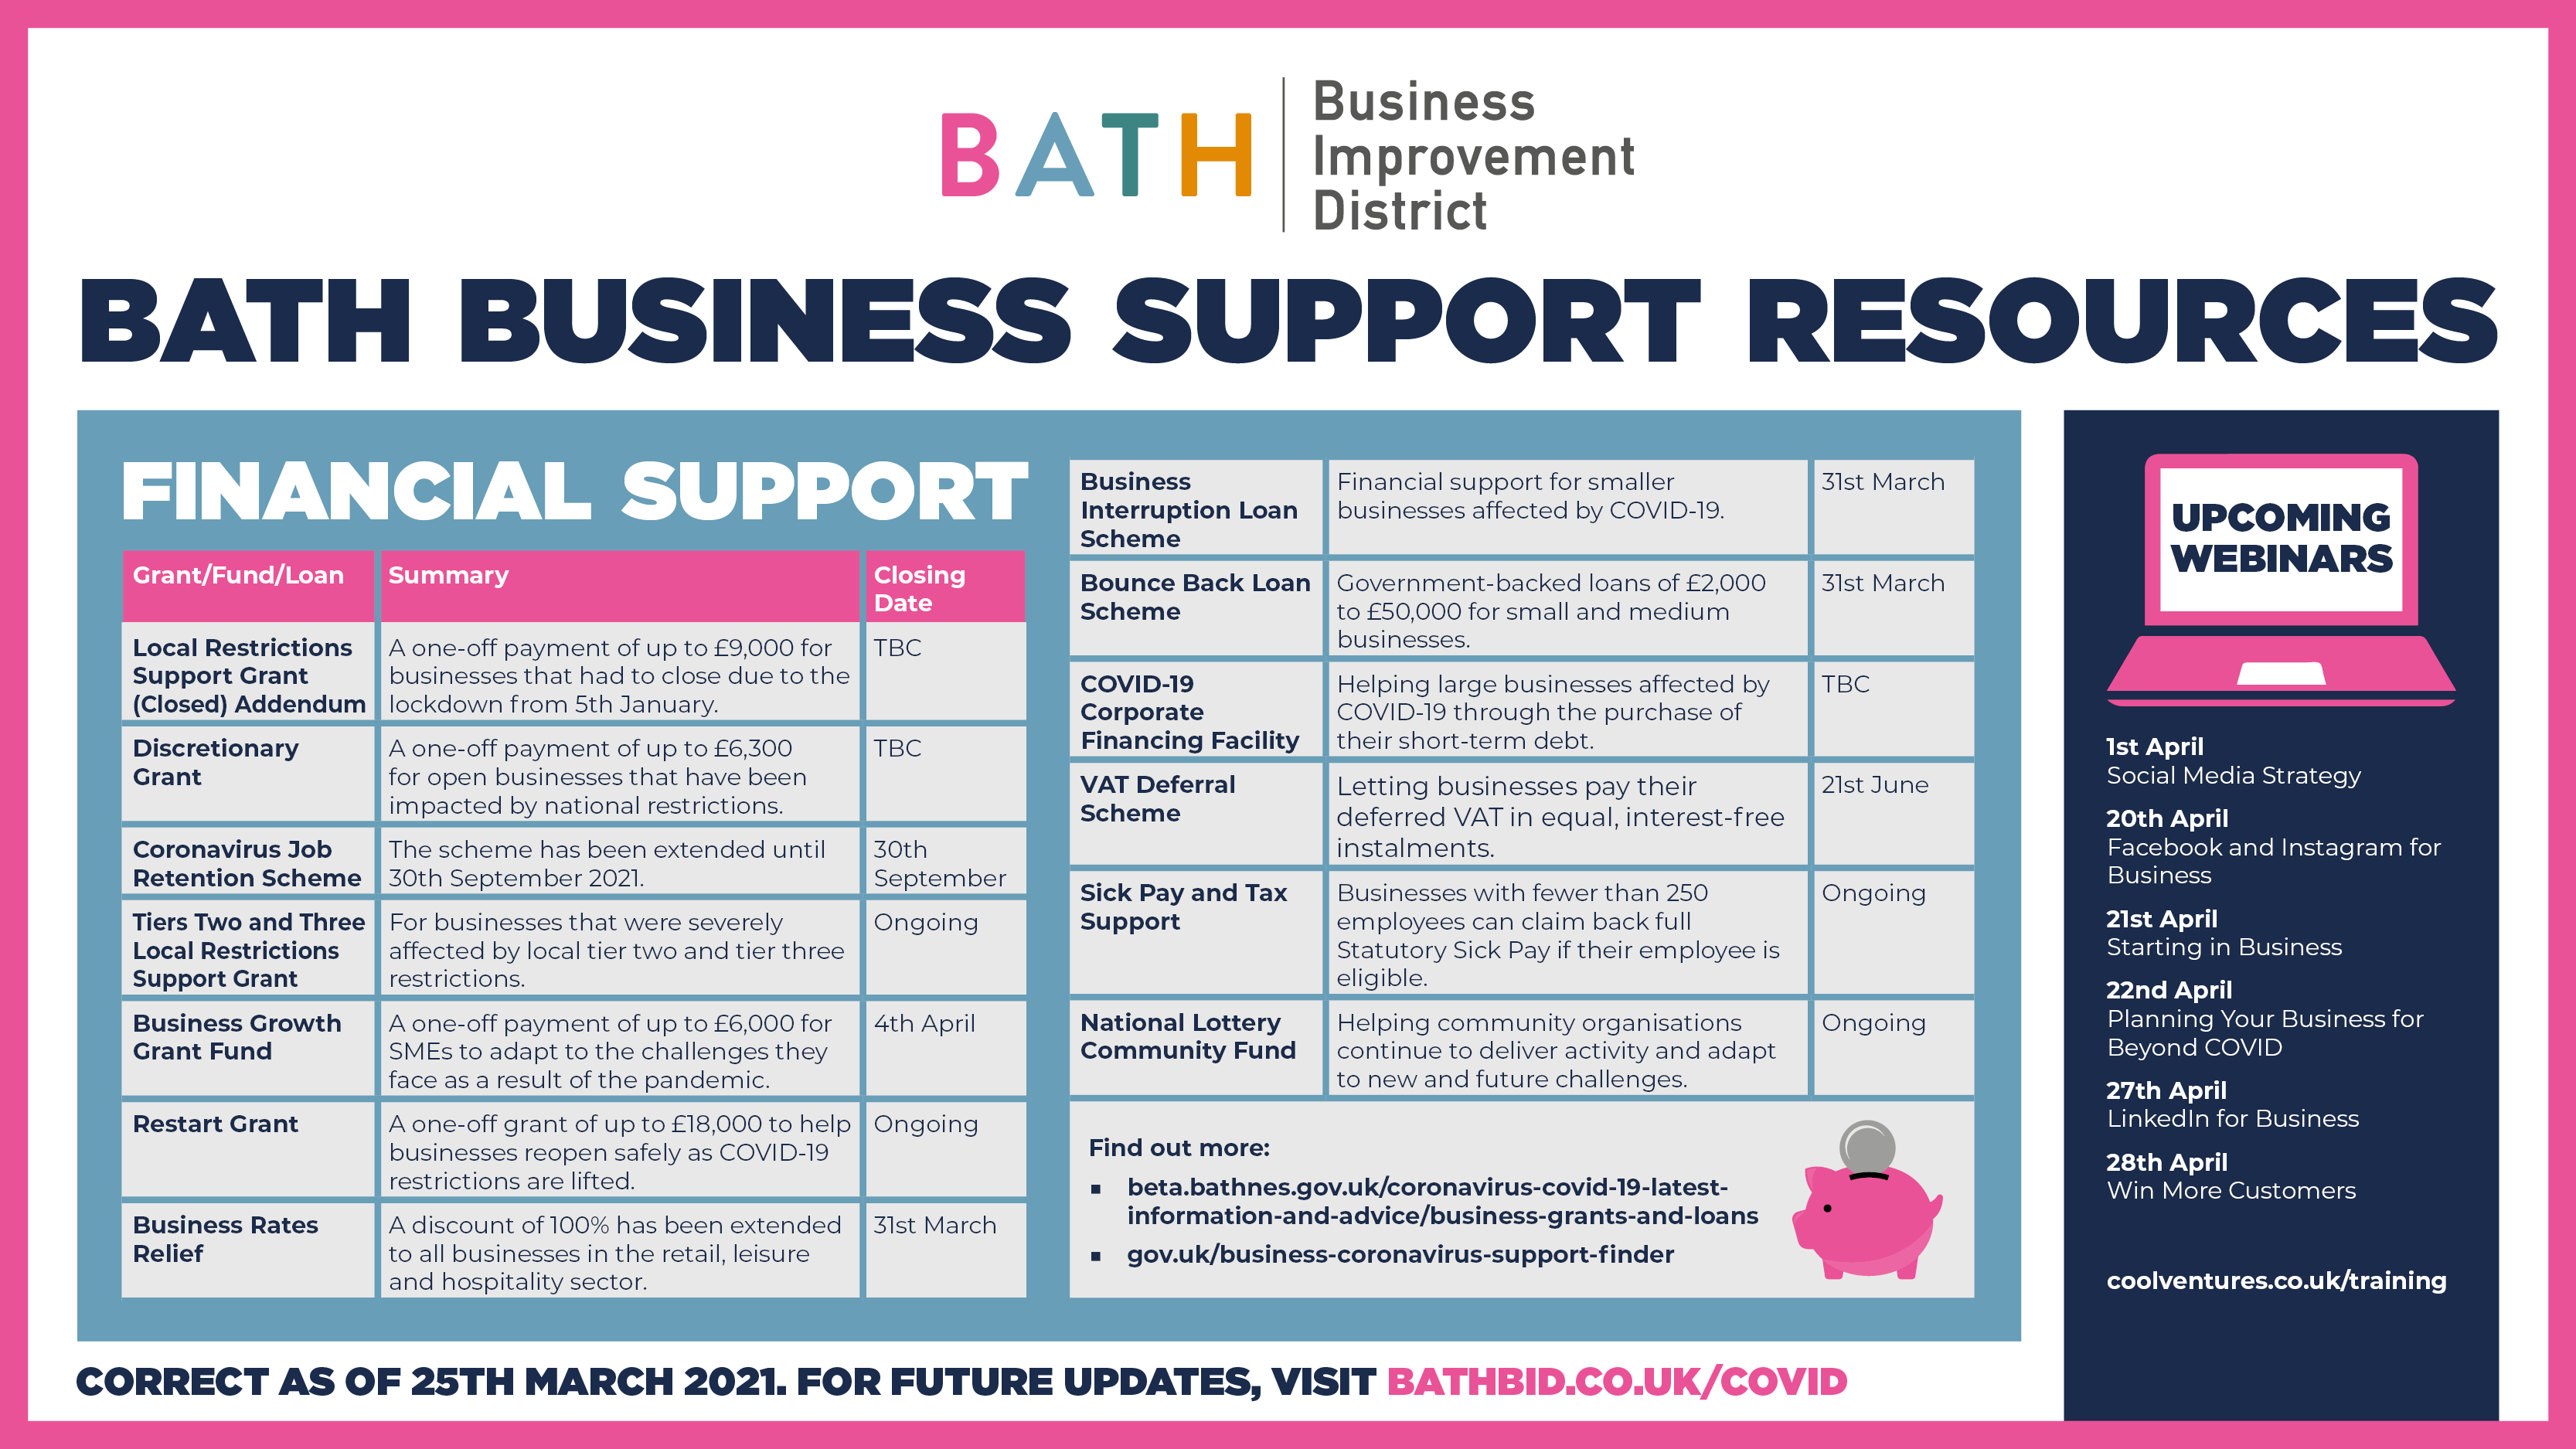 Bath Business Support Resources